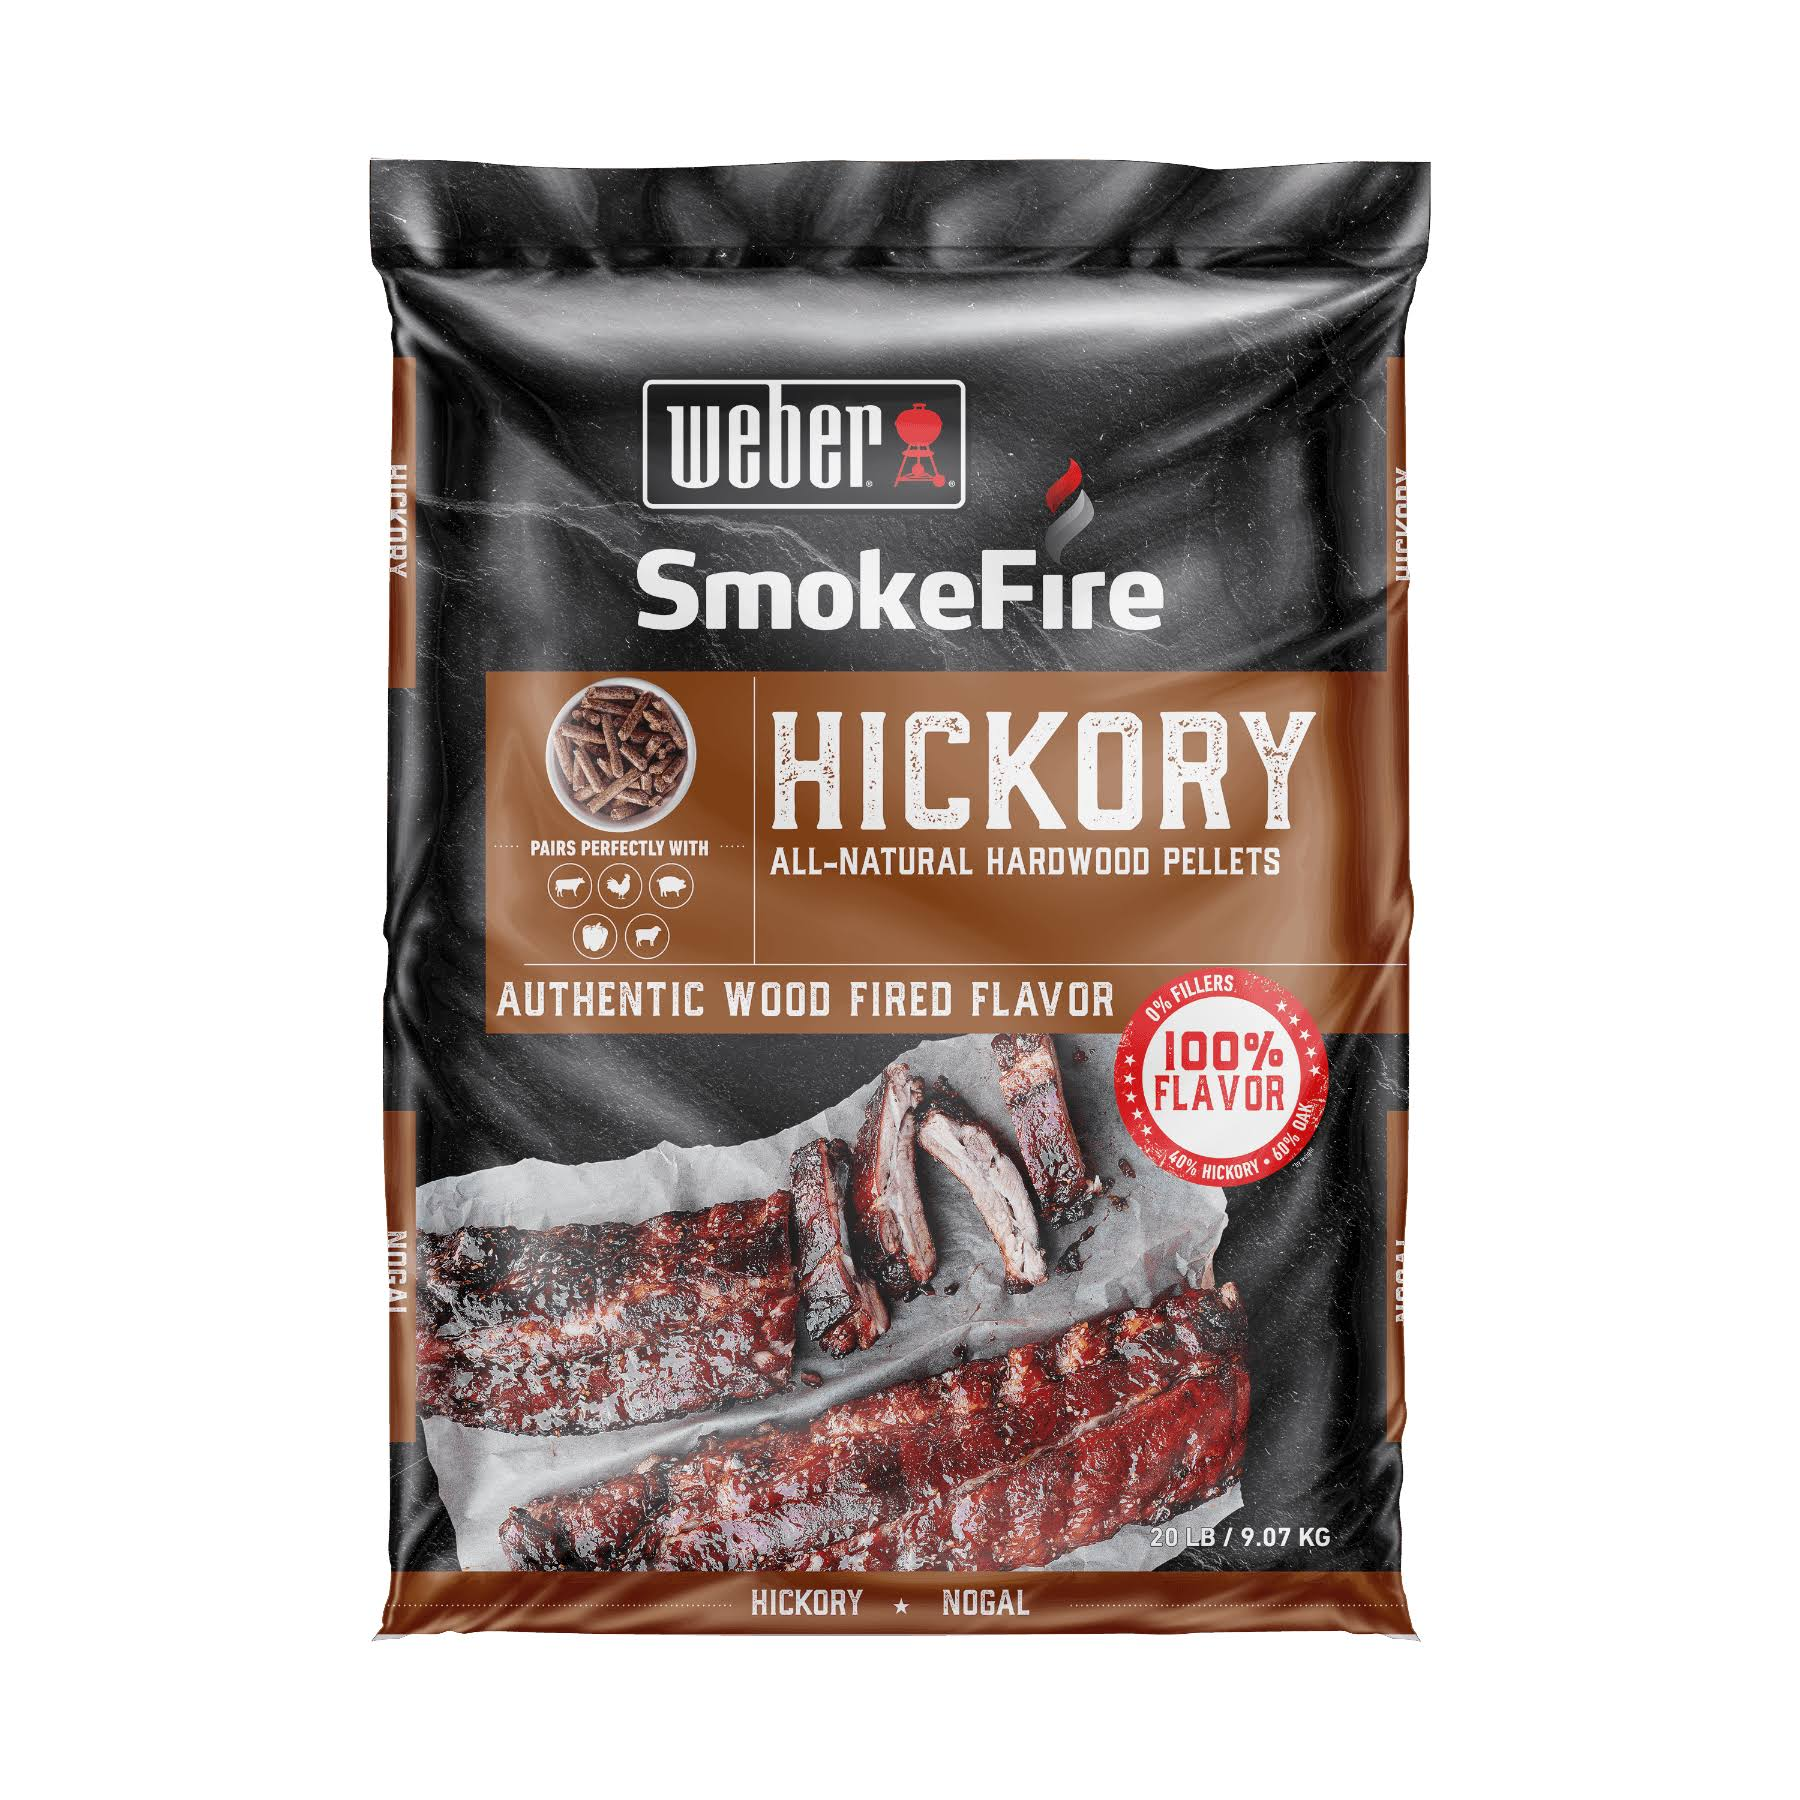 Weber 190002 SmokeFire Hickory All-Natural Hardwood Pellets - 20 lbs